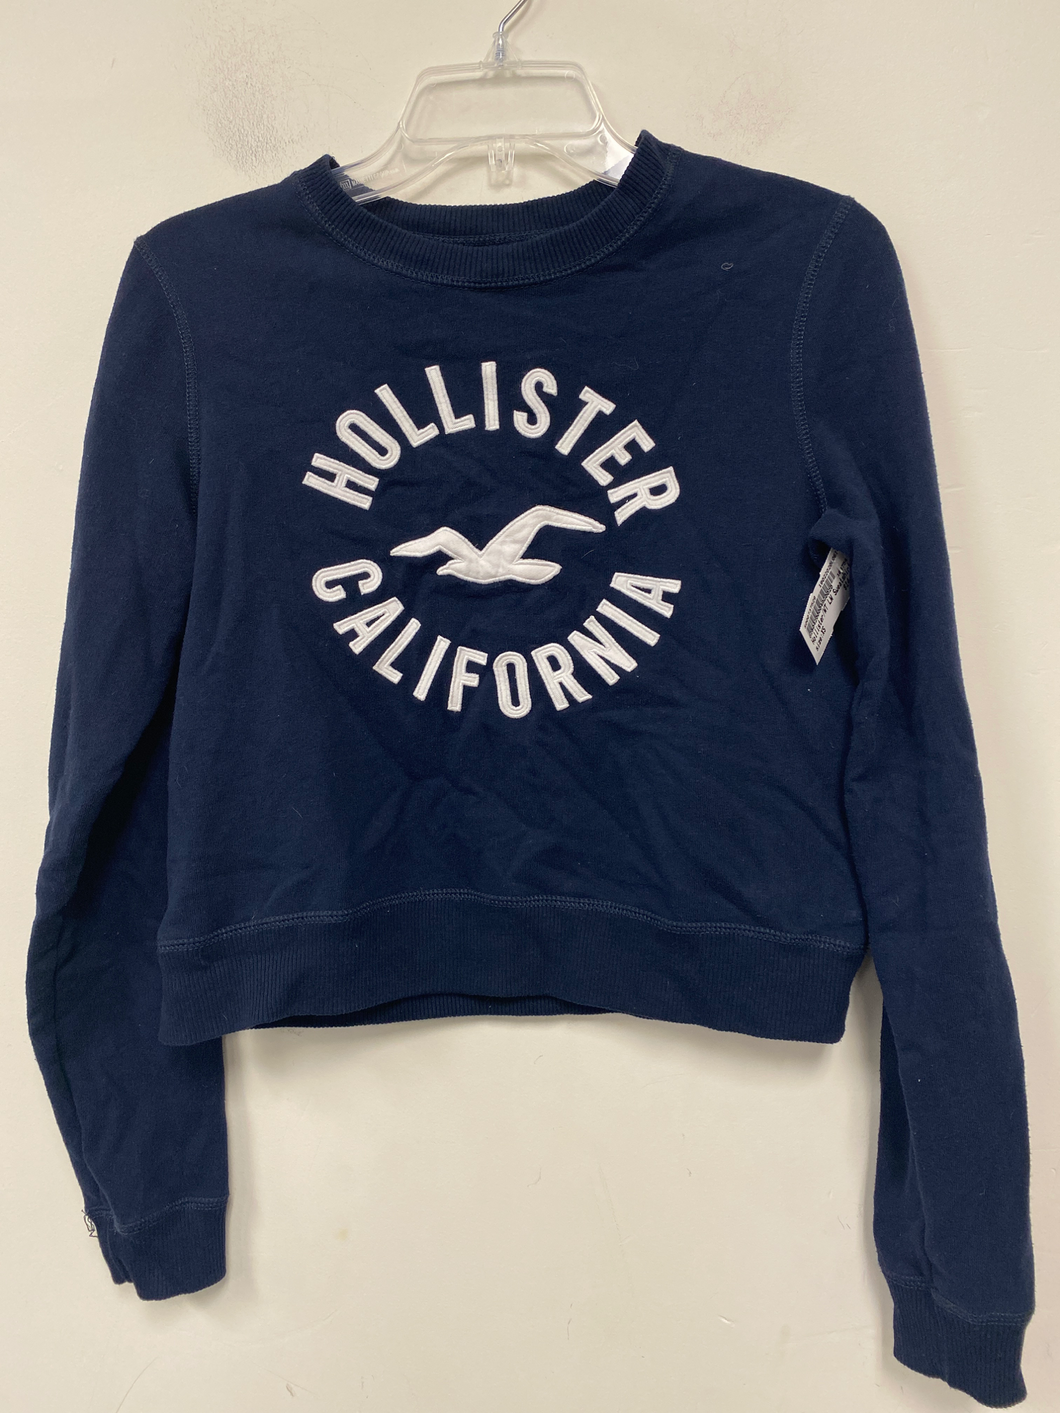 Hollister Sweatshirt Size Extra Small